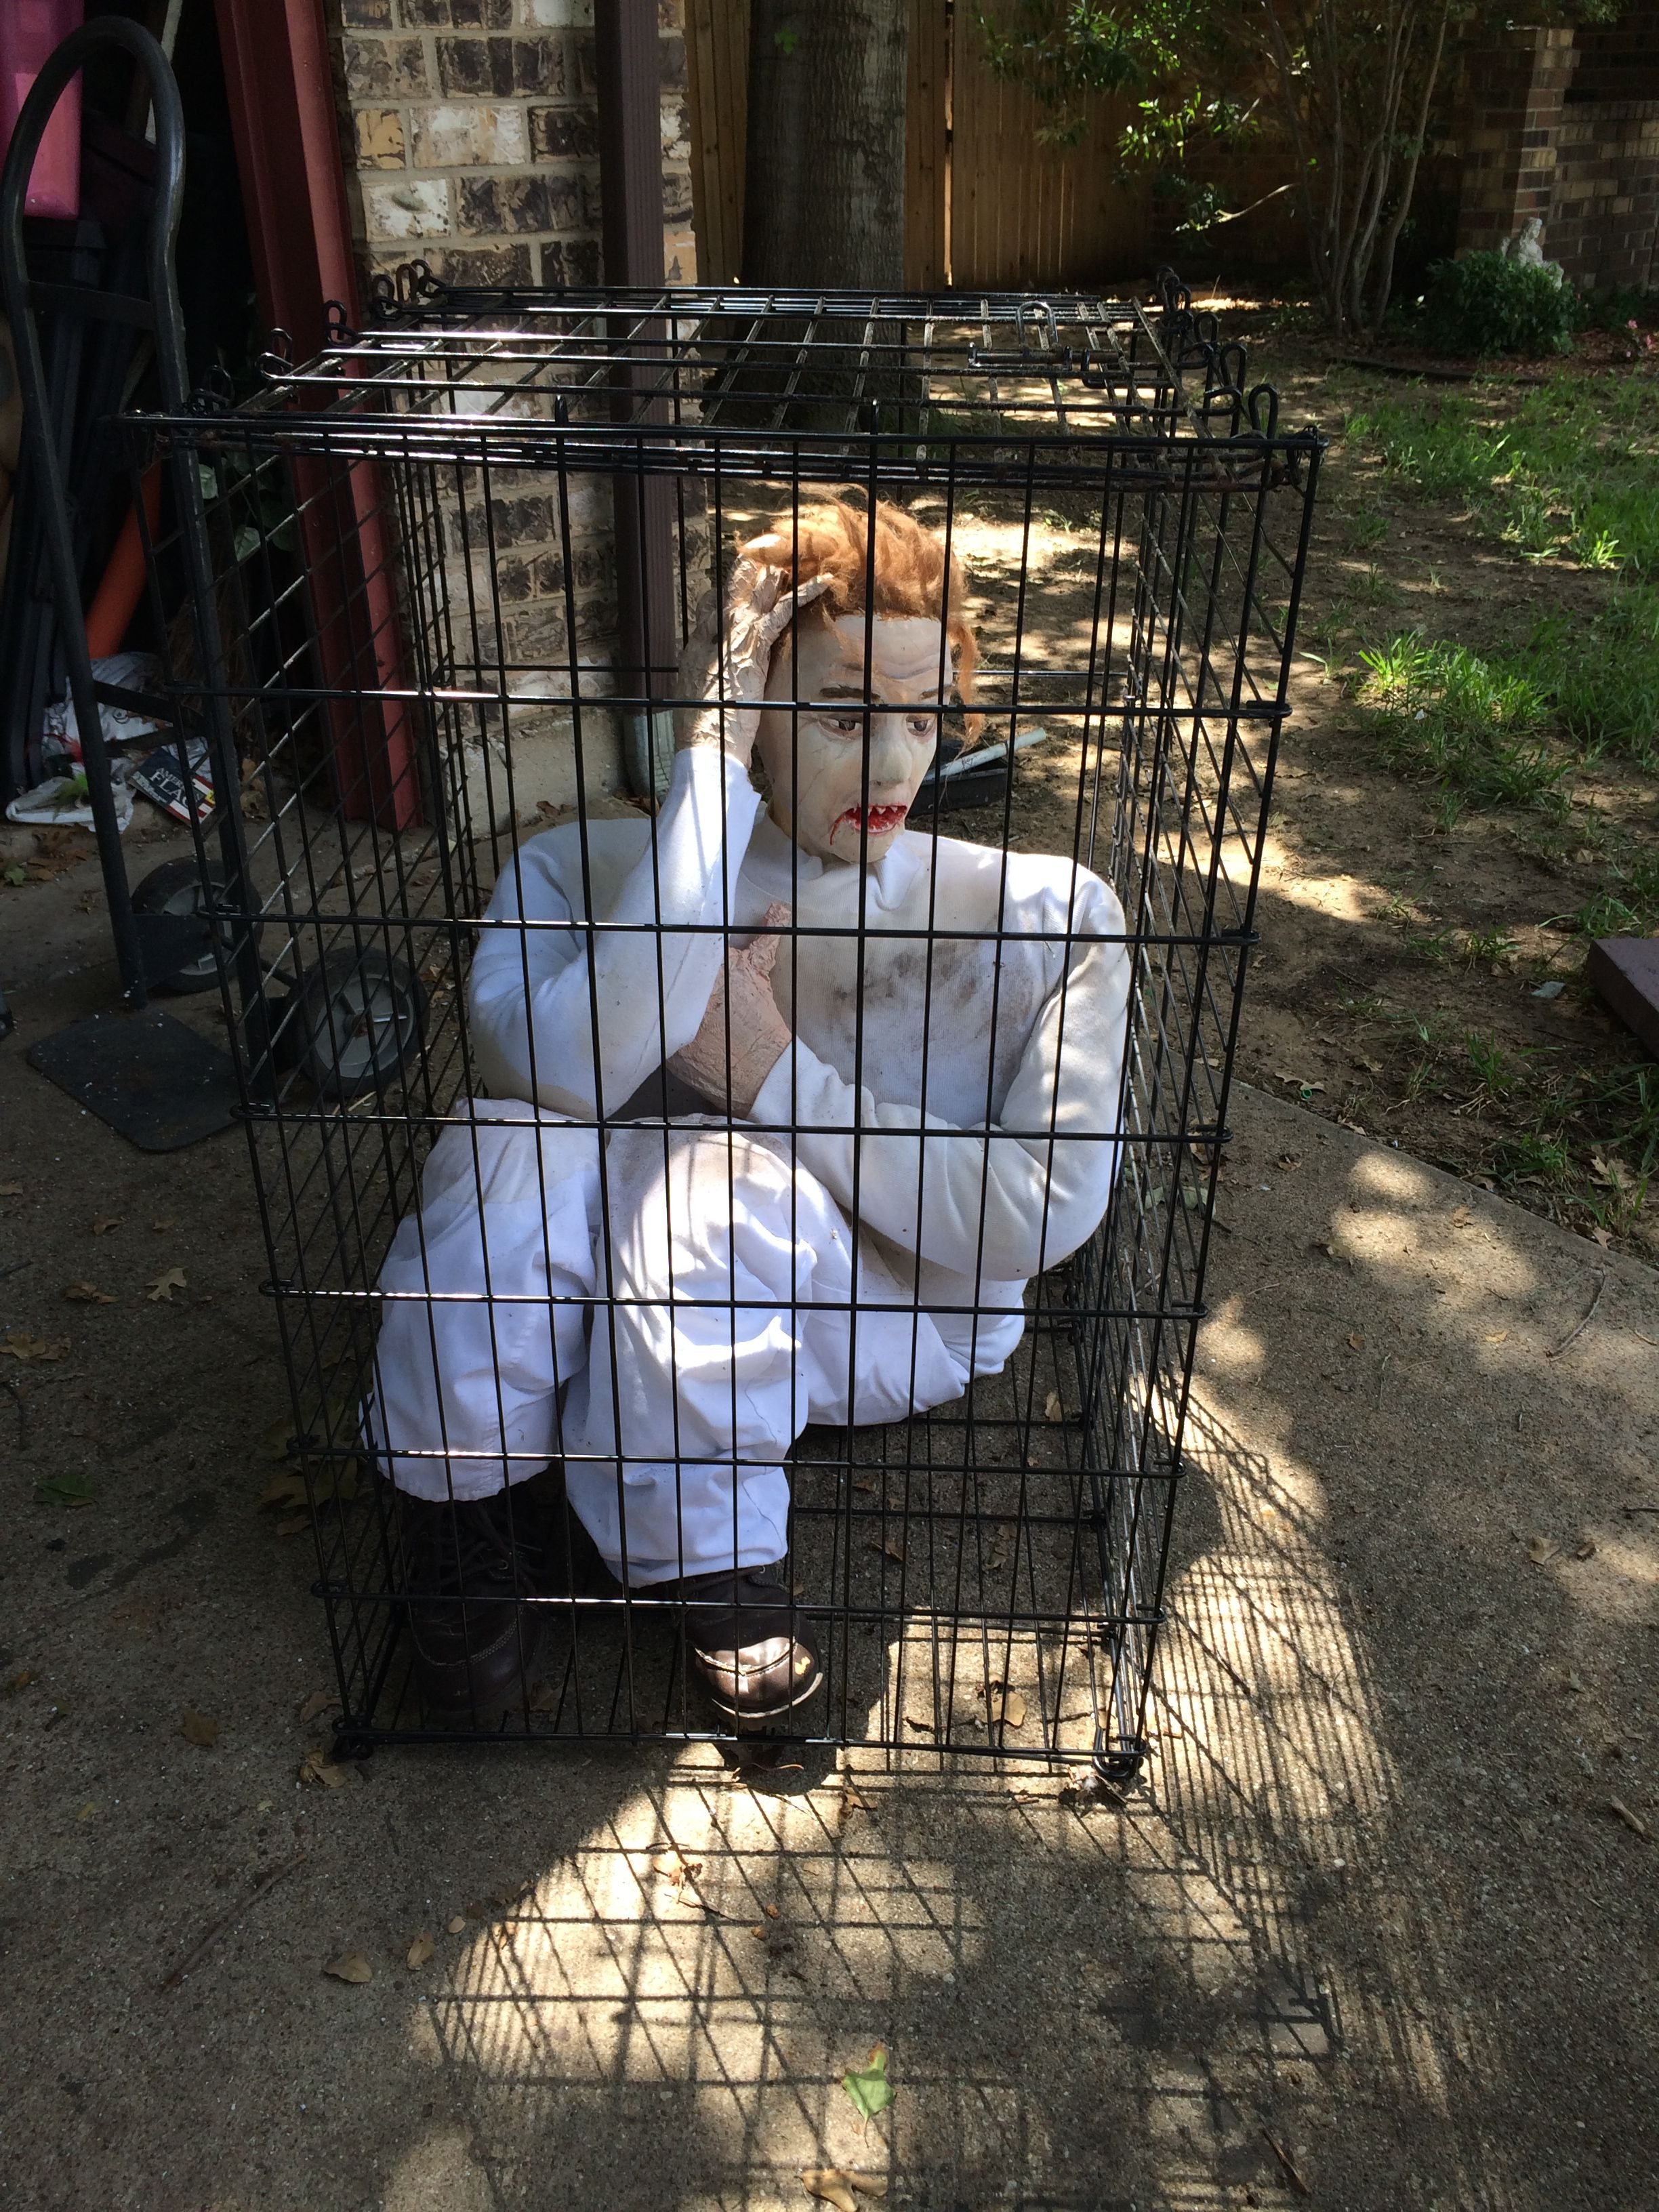 creepy guy in a cage | Haunted Insane Asylum Party | Pinterest | Creepy guy,